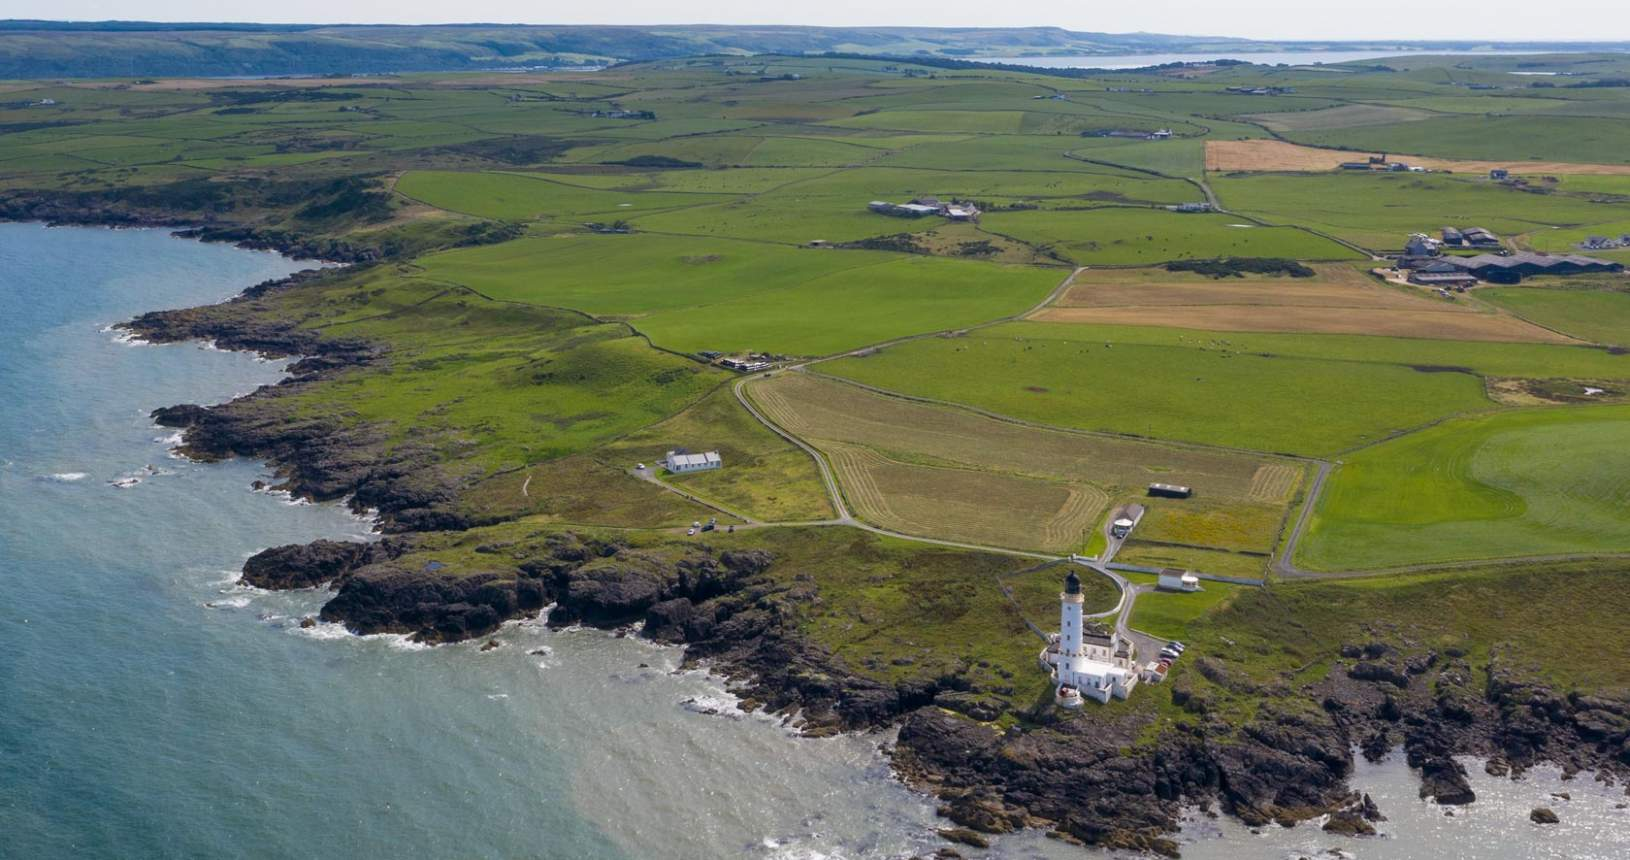 Corsewall Point from the Air